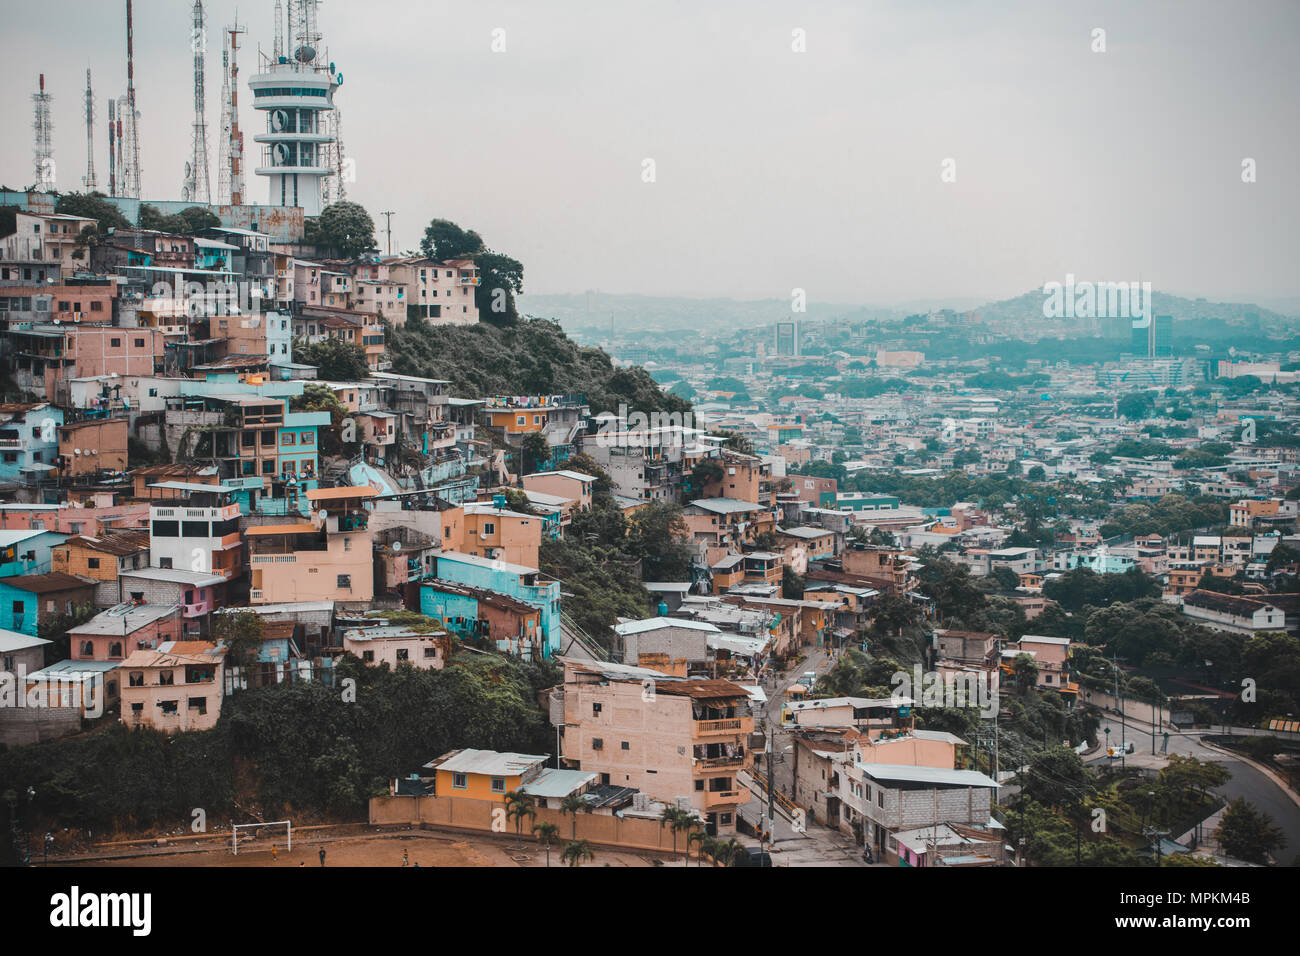 Old meets modern in views from Las Peñas over the colorful houses of Guayaquil, a UNESCO world heritage site in Ecuador's biggest city - Stock Image